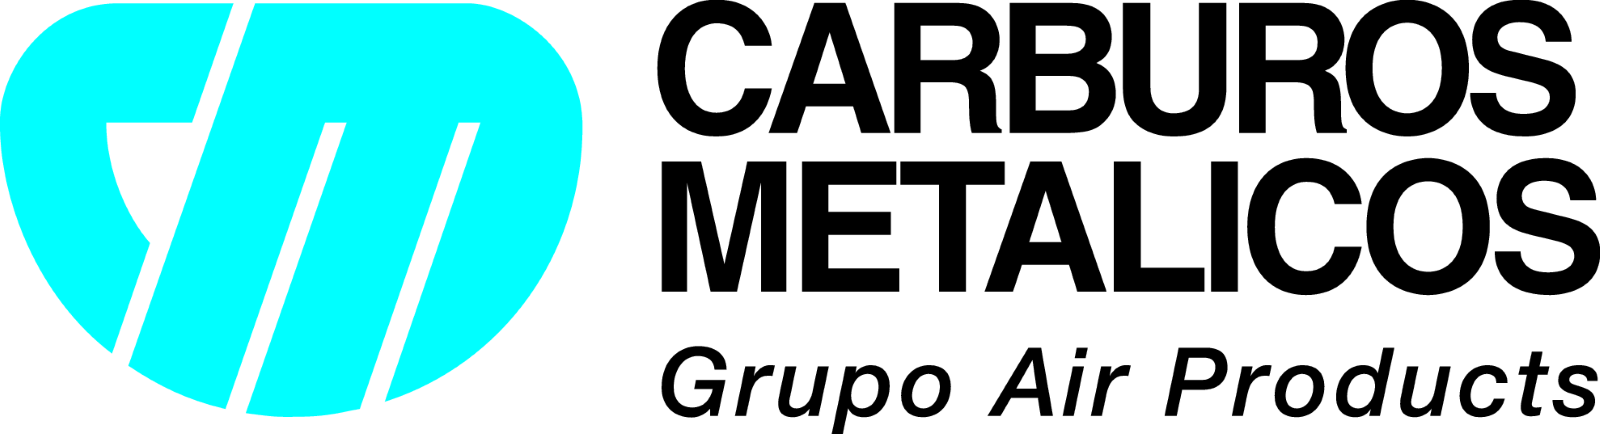 Carburos Metálicos